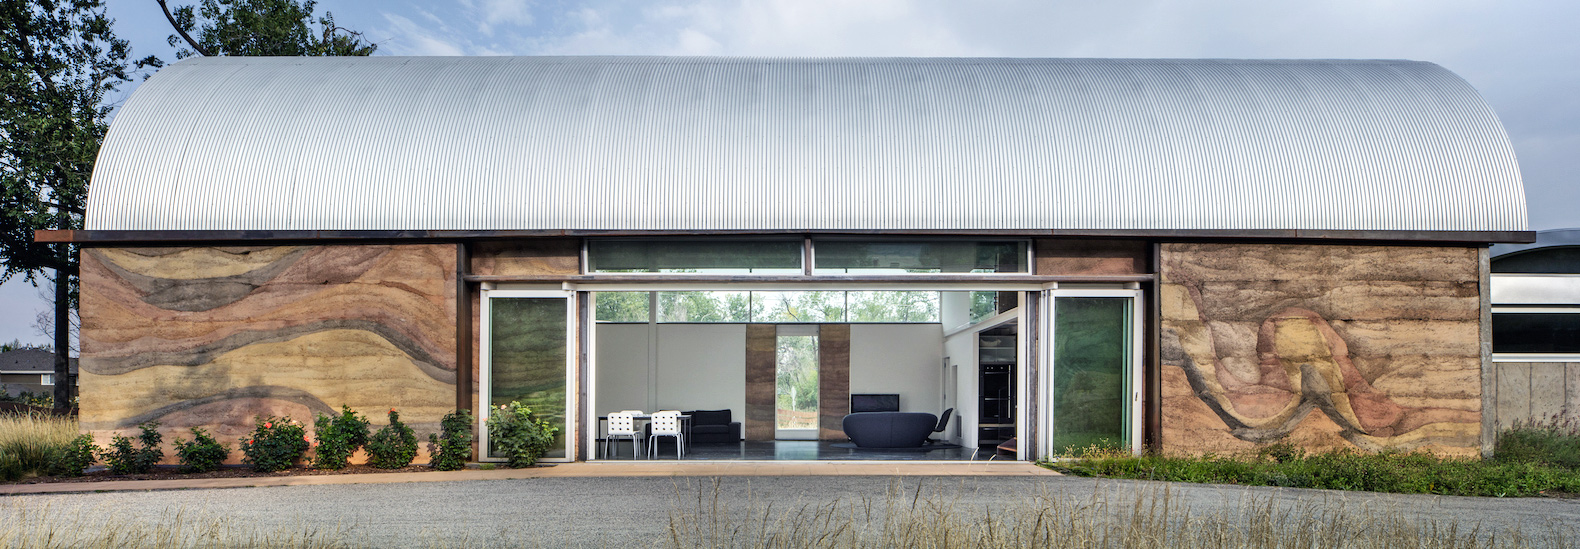 Captivating Minimalist Artist Retreat With Rammed Earth Walls Draws Upon 100% Renewable  Resources